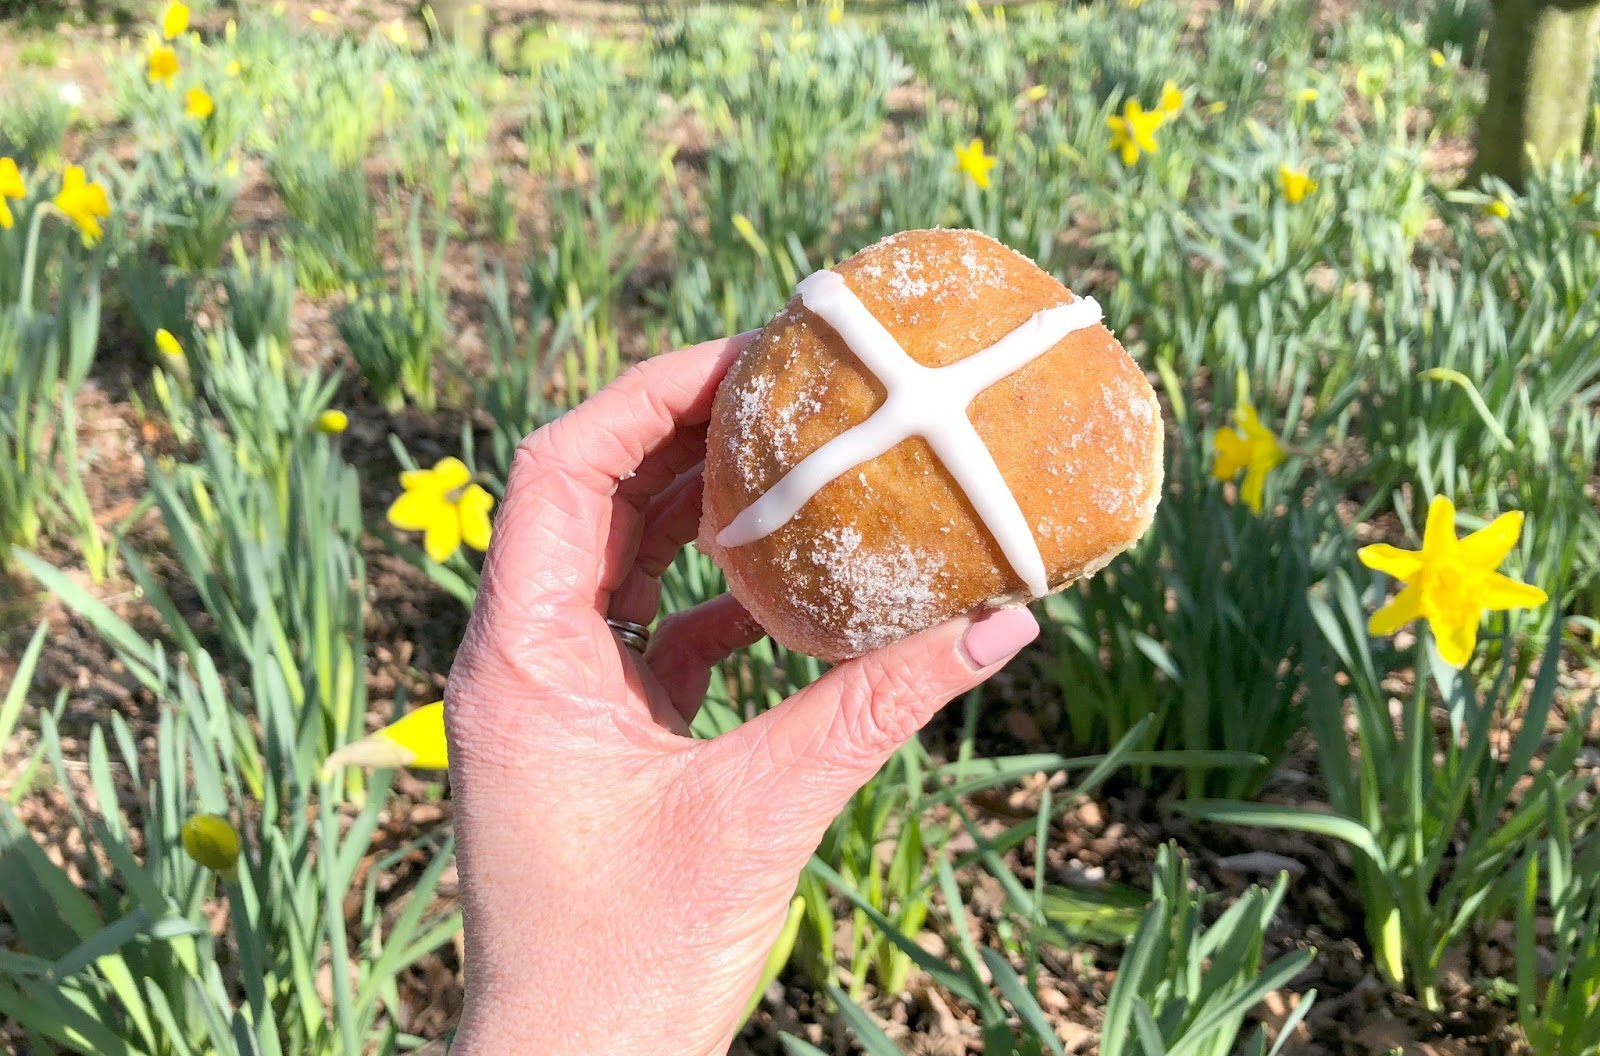 The Best Easter Cakes and Treats in Newcastle - Proven Doughnuts